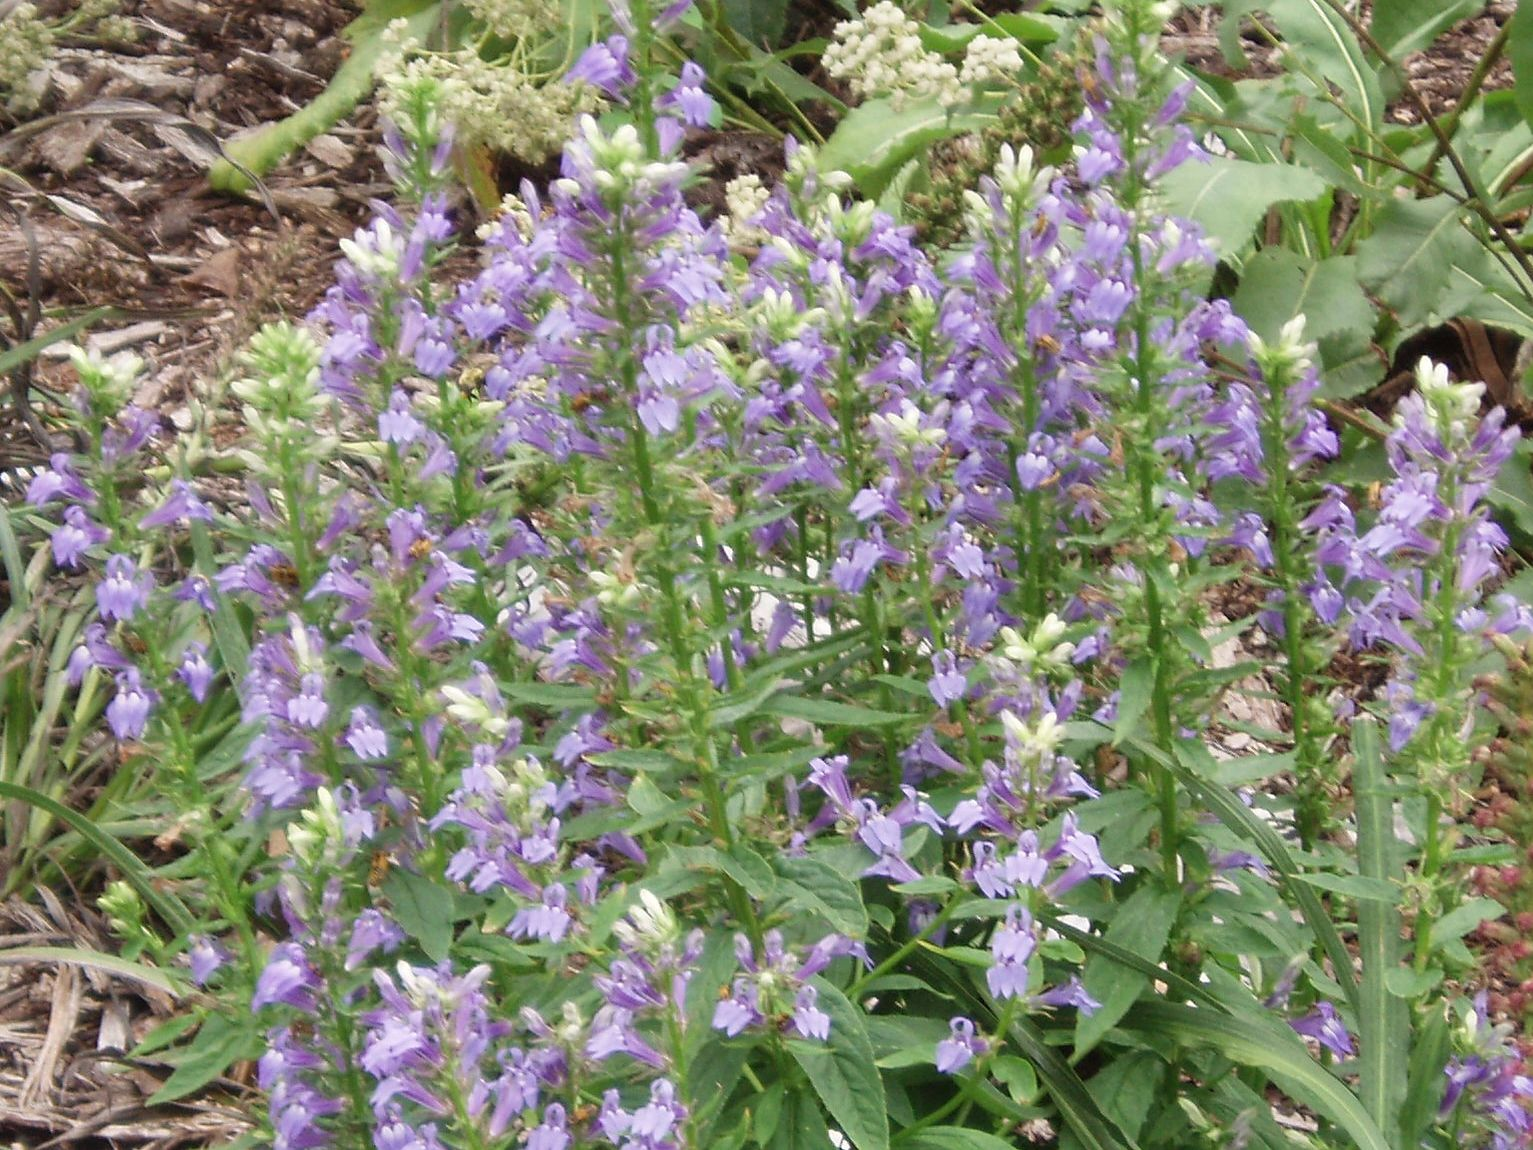 "{""blocks"":[{""key"":""528po"",""text"":""Lobelia siphilitica Great Blue Lobelia Blue Cardinal Flower - potted plants email john@easywildflowers.com"",""type"":""unstyled"",""depth"":0,""inlineStyleRanges"":[],""entityRanges"":[],""data"":{}}],""entityMap"":{}}"